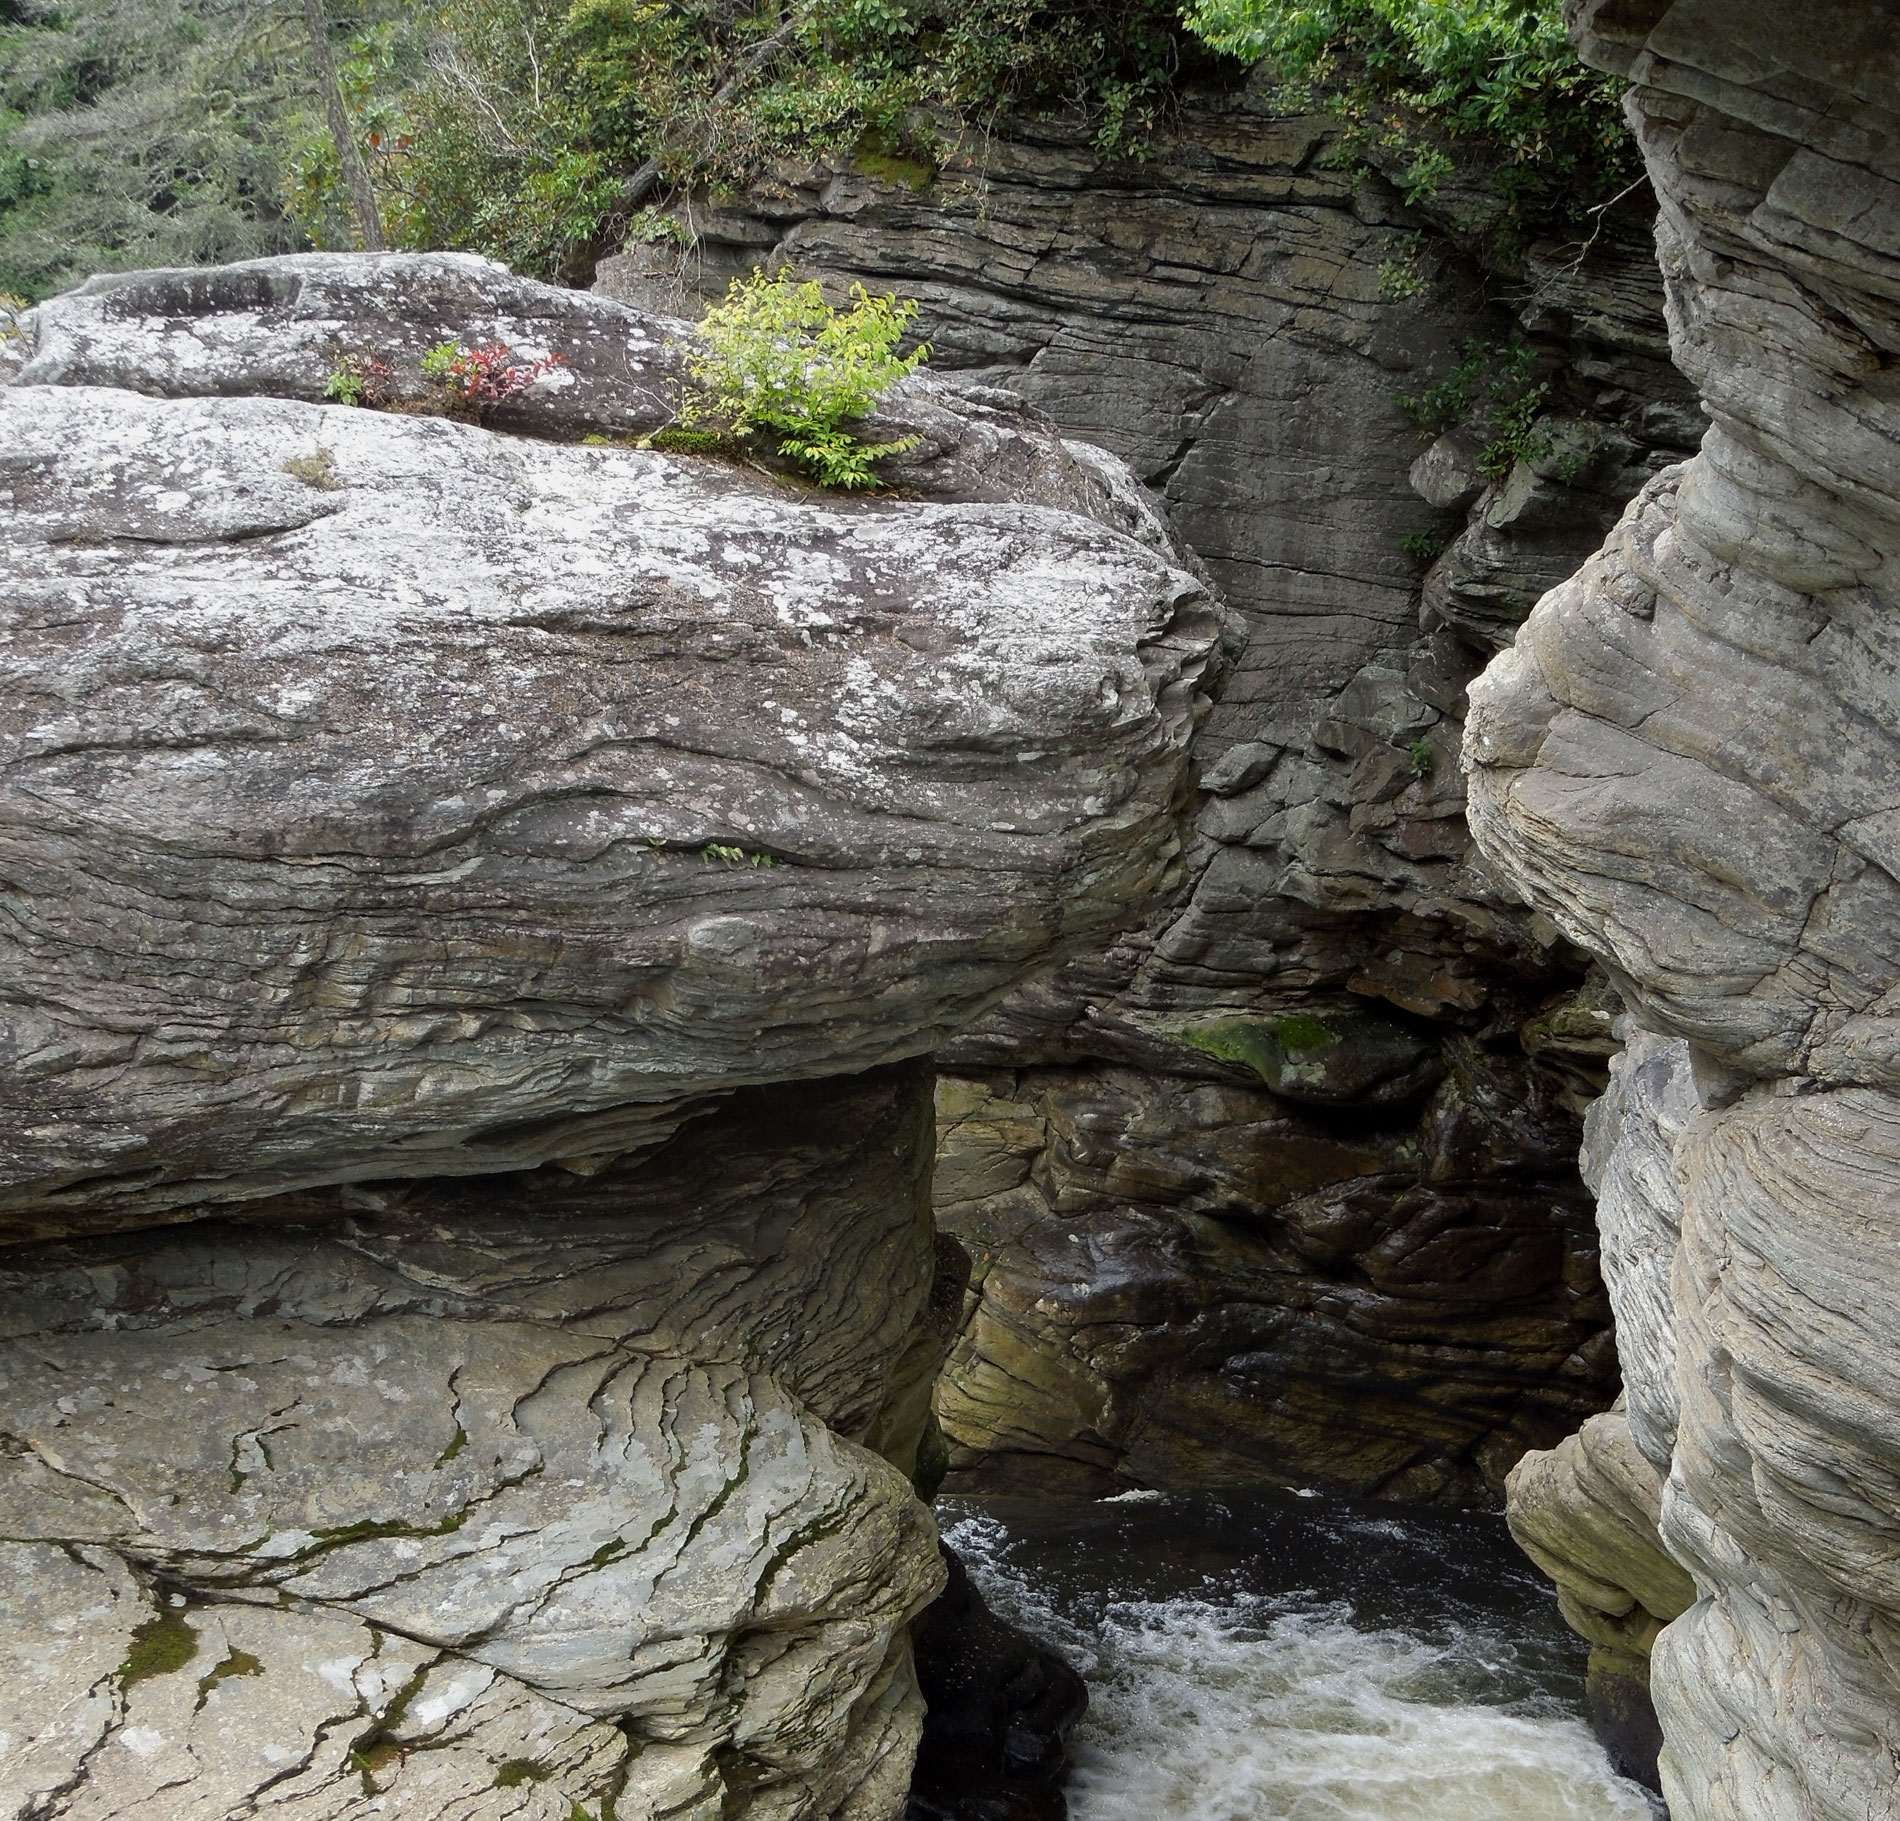 Gorge at Linville Falls